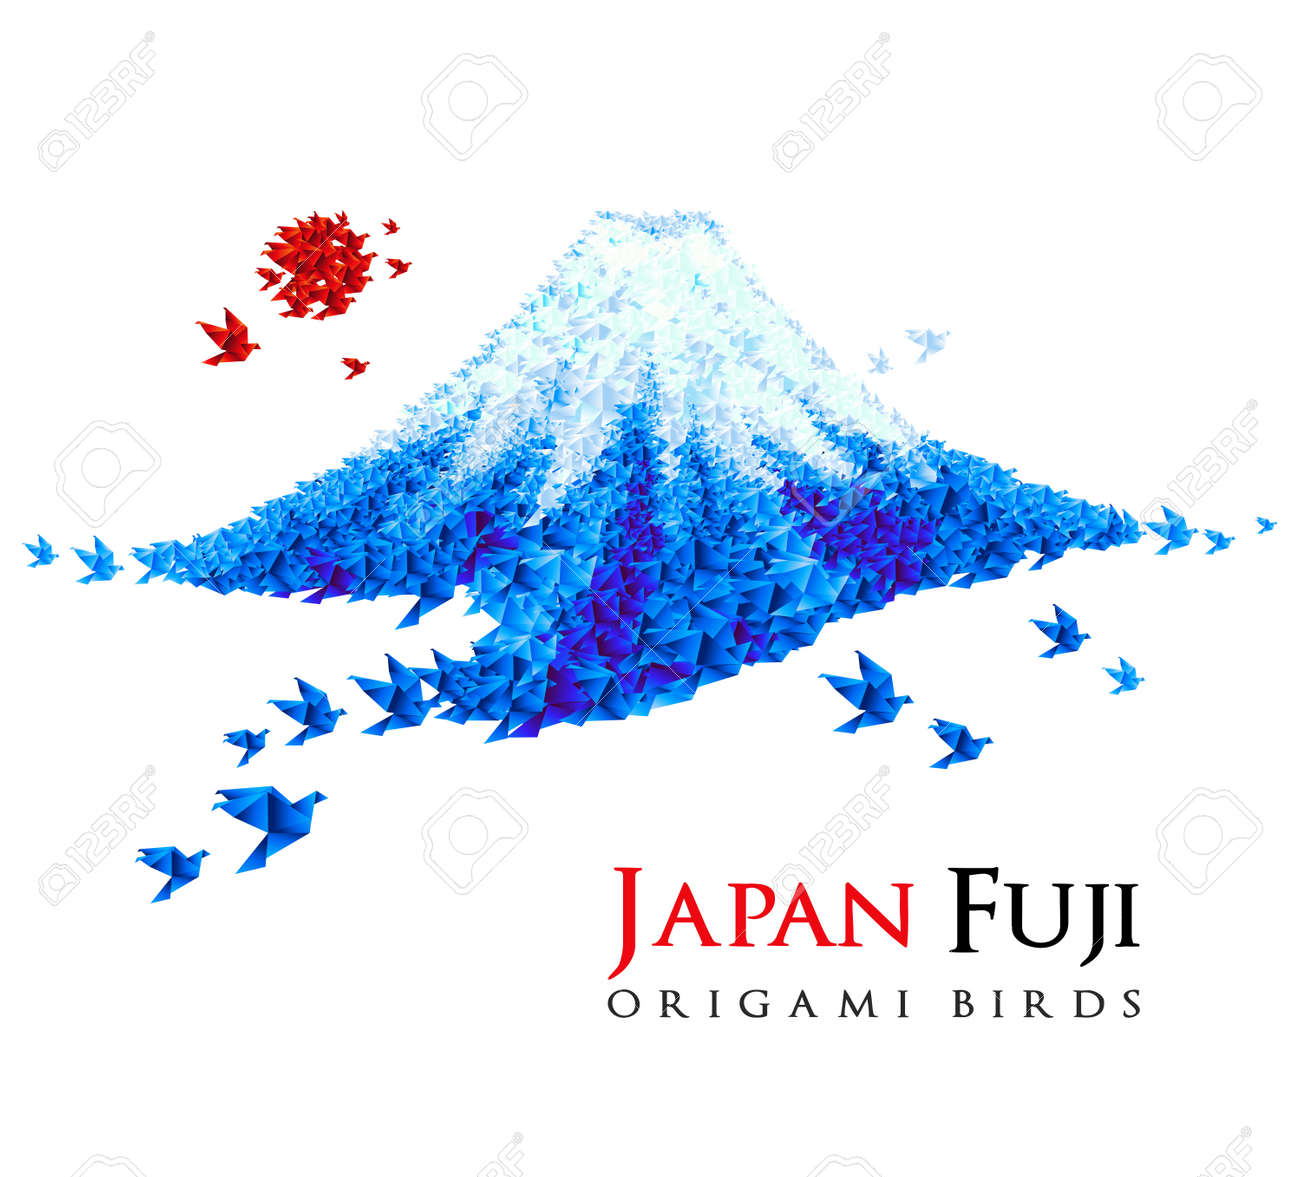 Fuji shaped from origami birds, Japan national symbol. Great for social, culture, travel creative idea designs. Stock Photo - 9674375